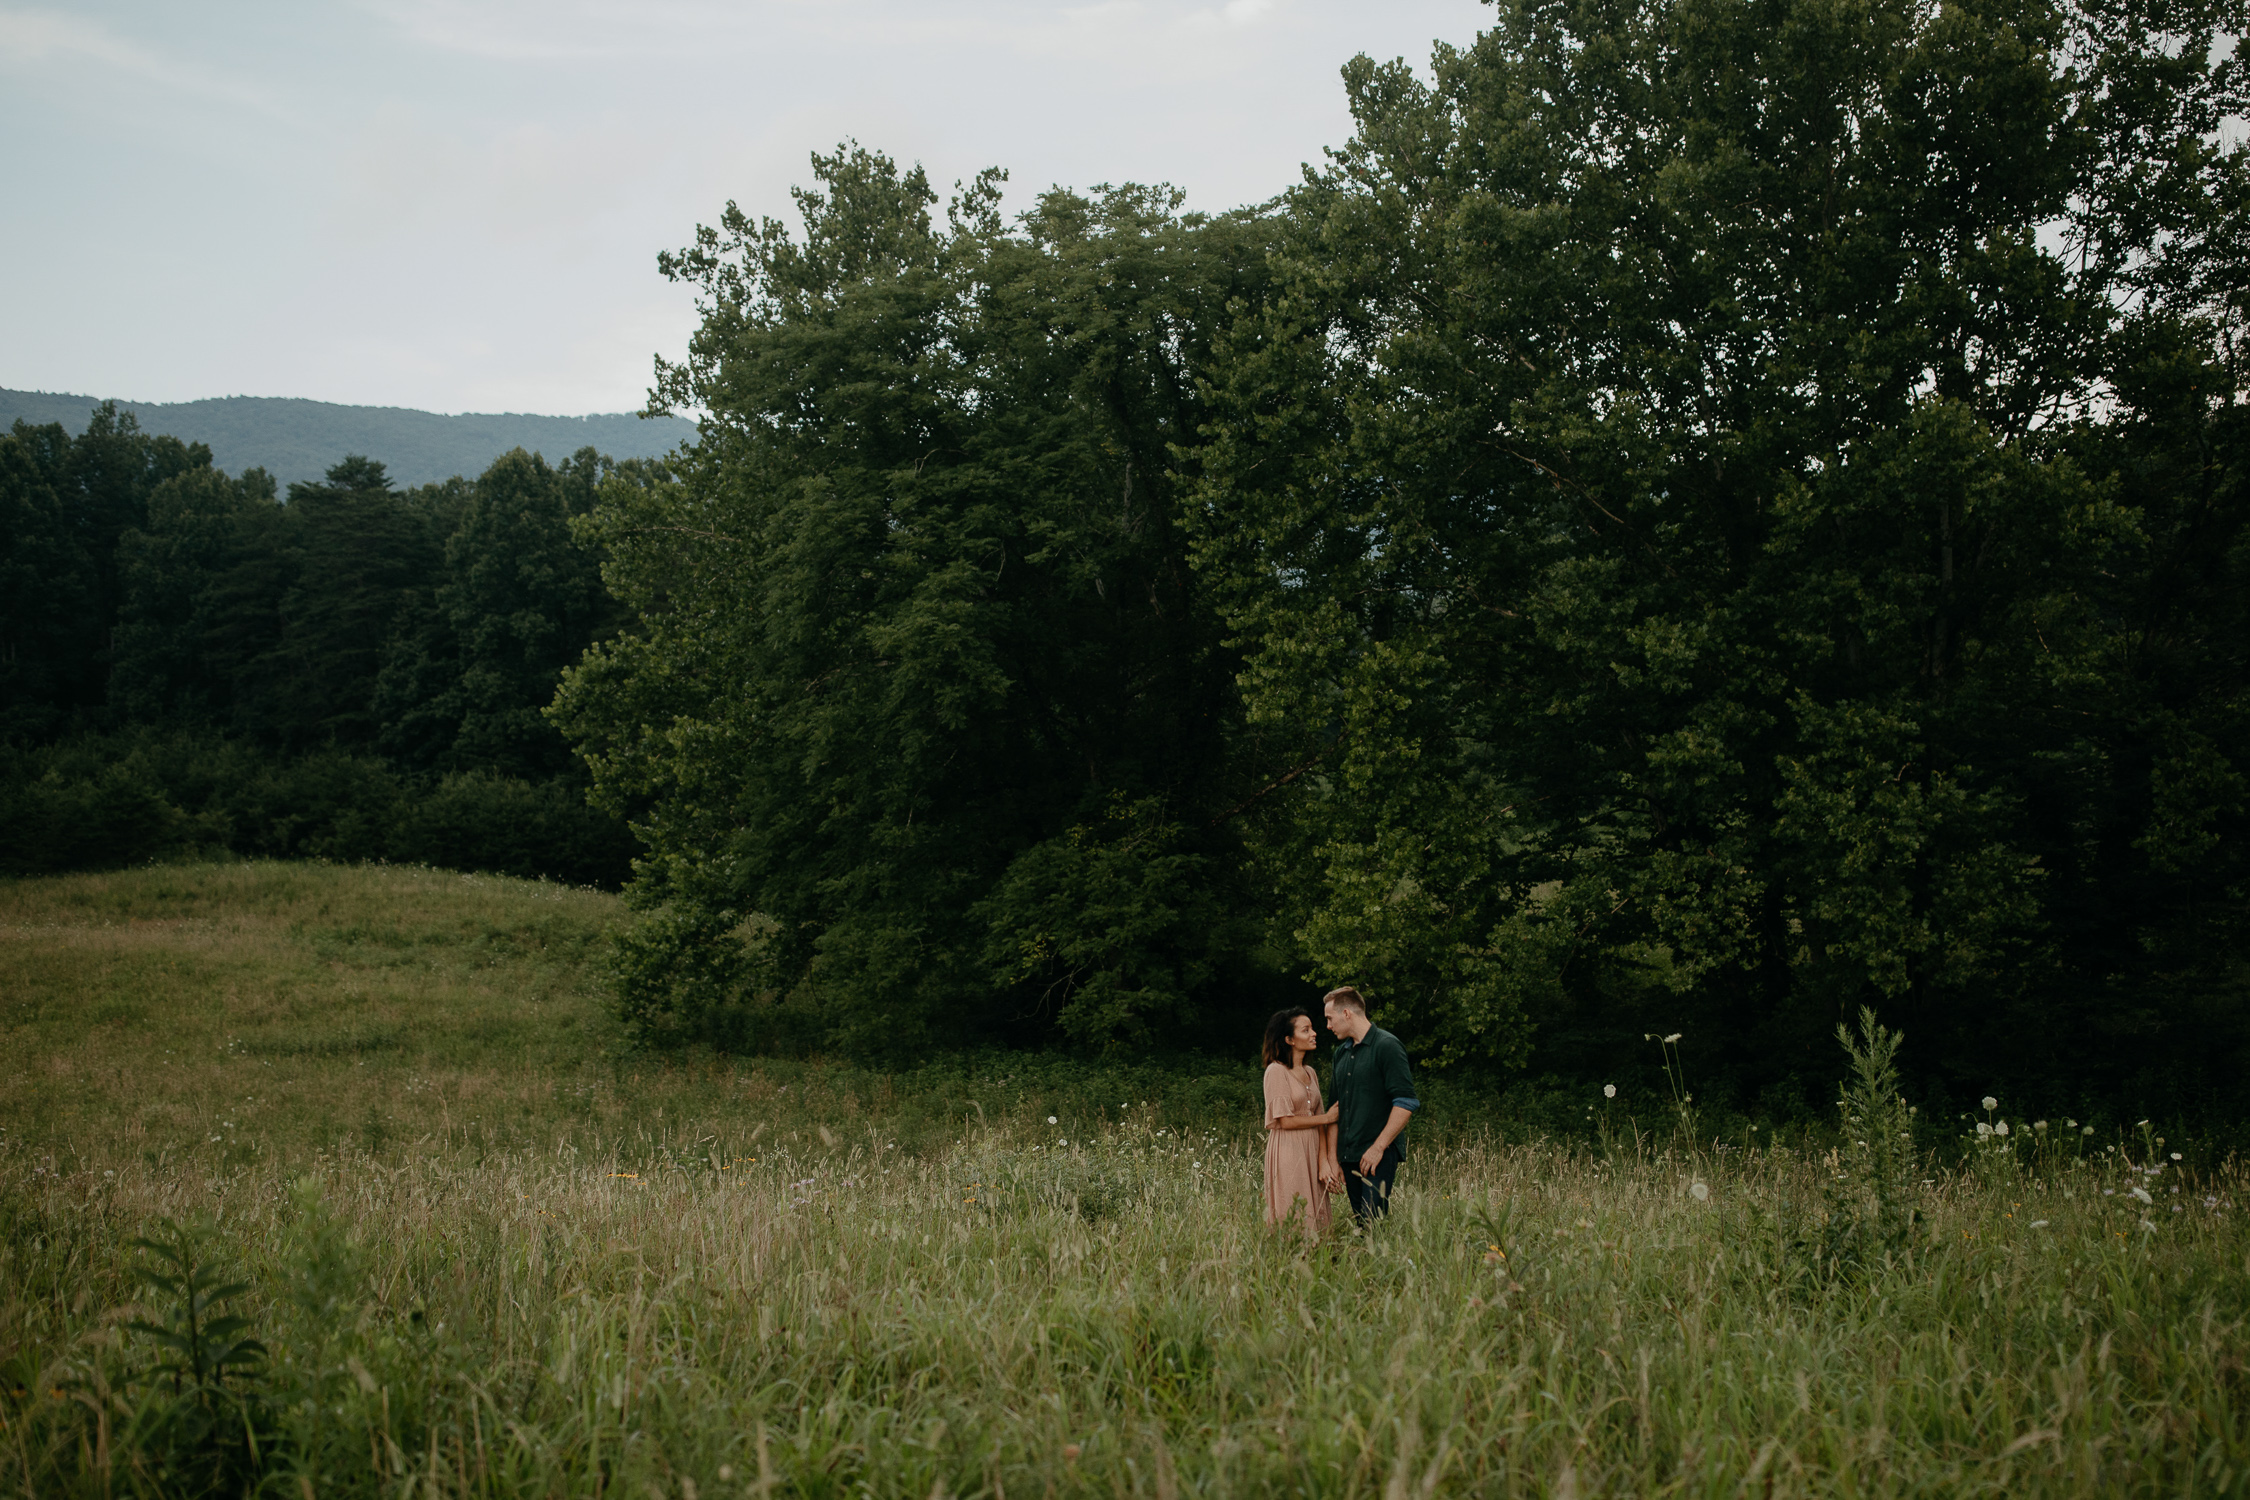 ariannamtorres and isaac engagement session at cades cove smoky mountains elopement-73.jpg